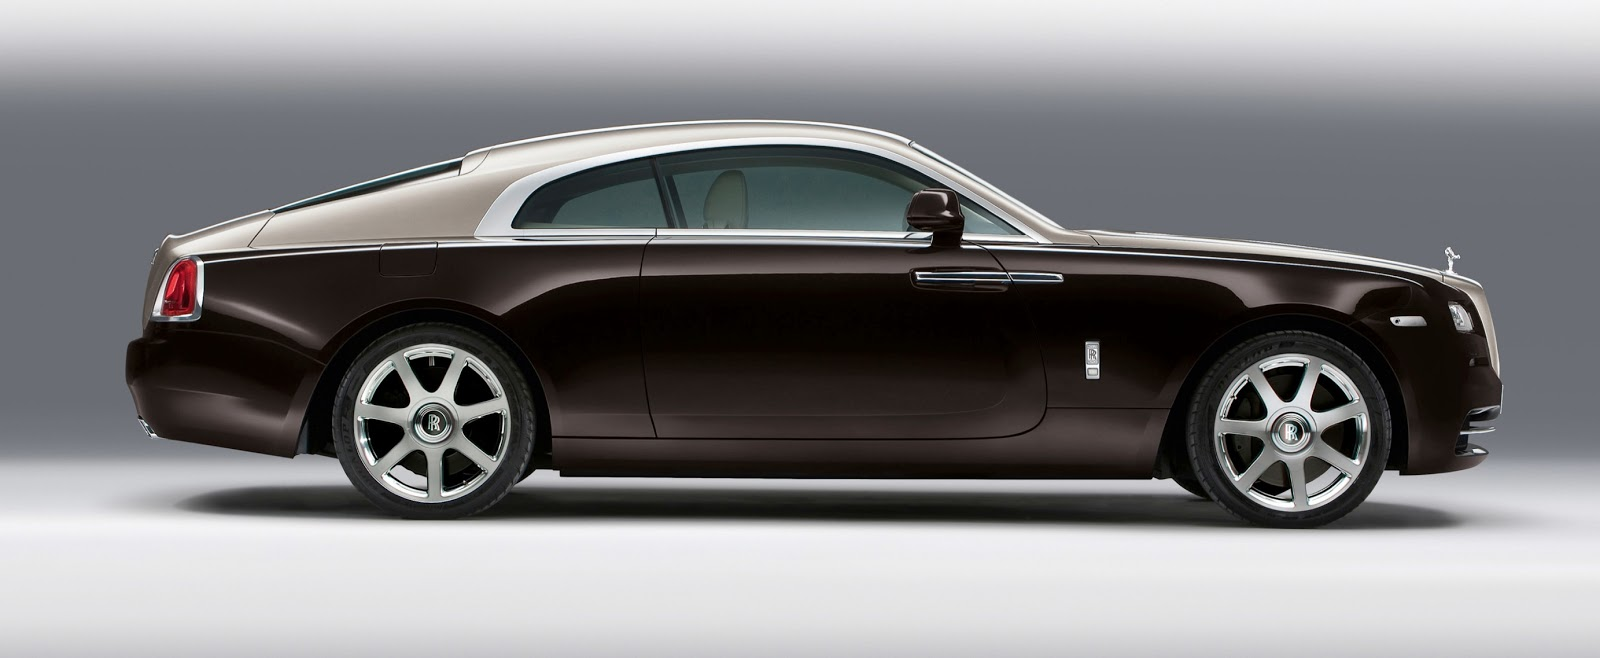 Rolls Royce Wraith The Three Rs Of British Two Door Luxury Cars Video